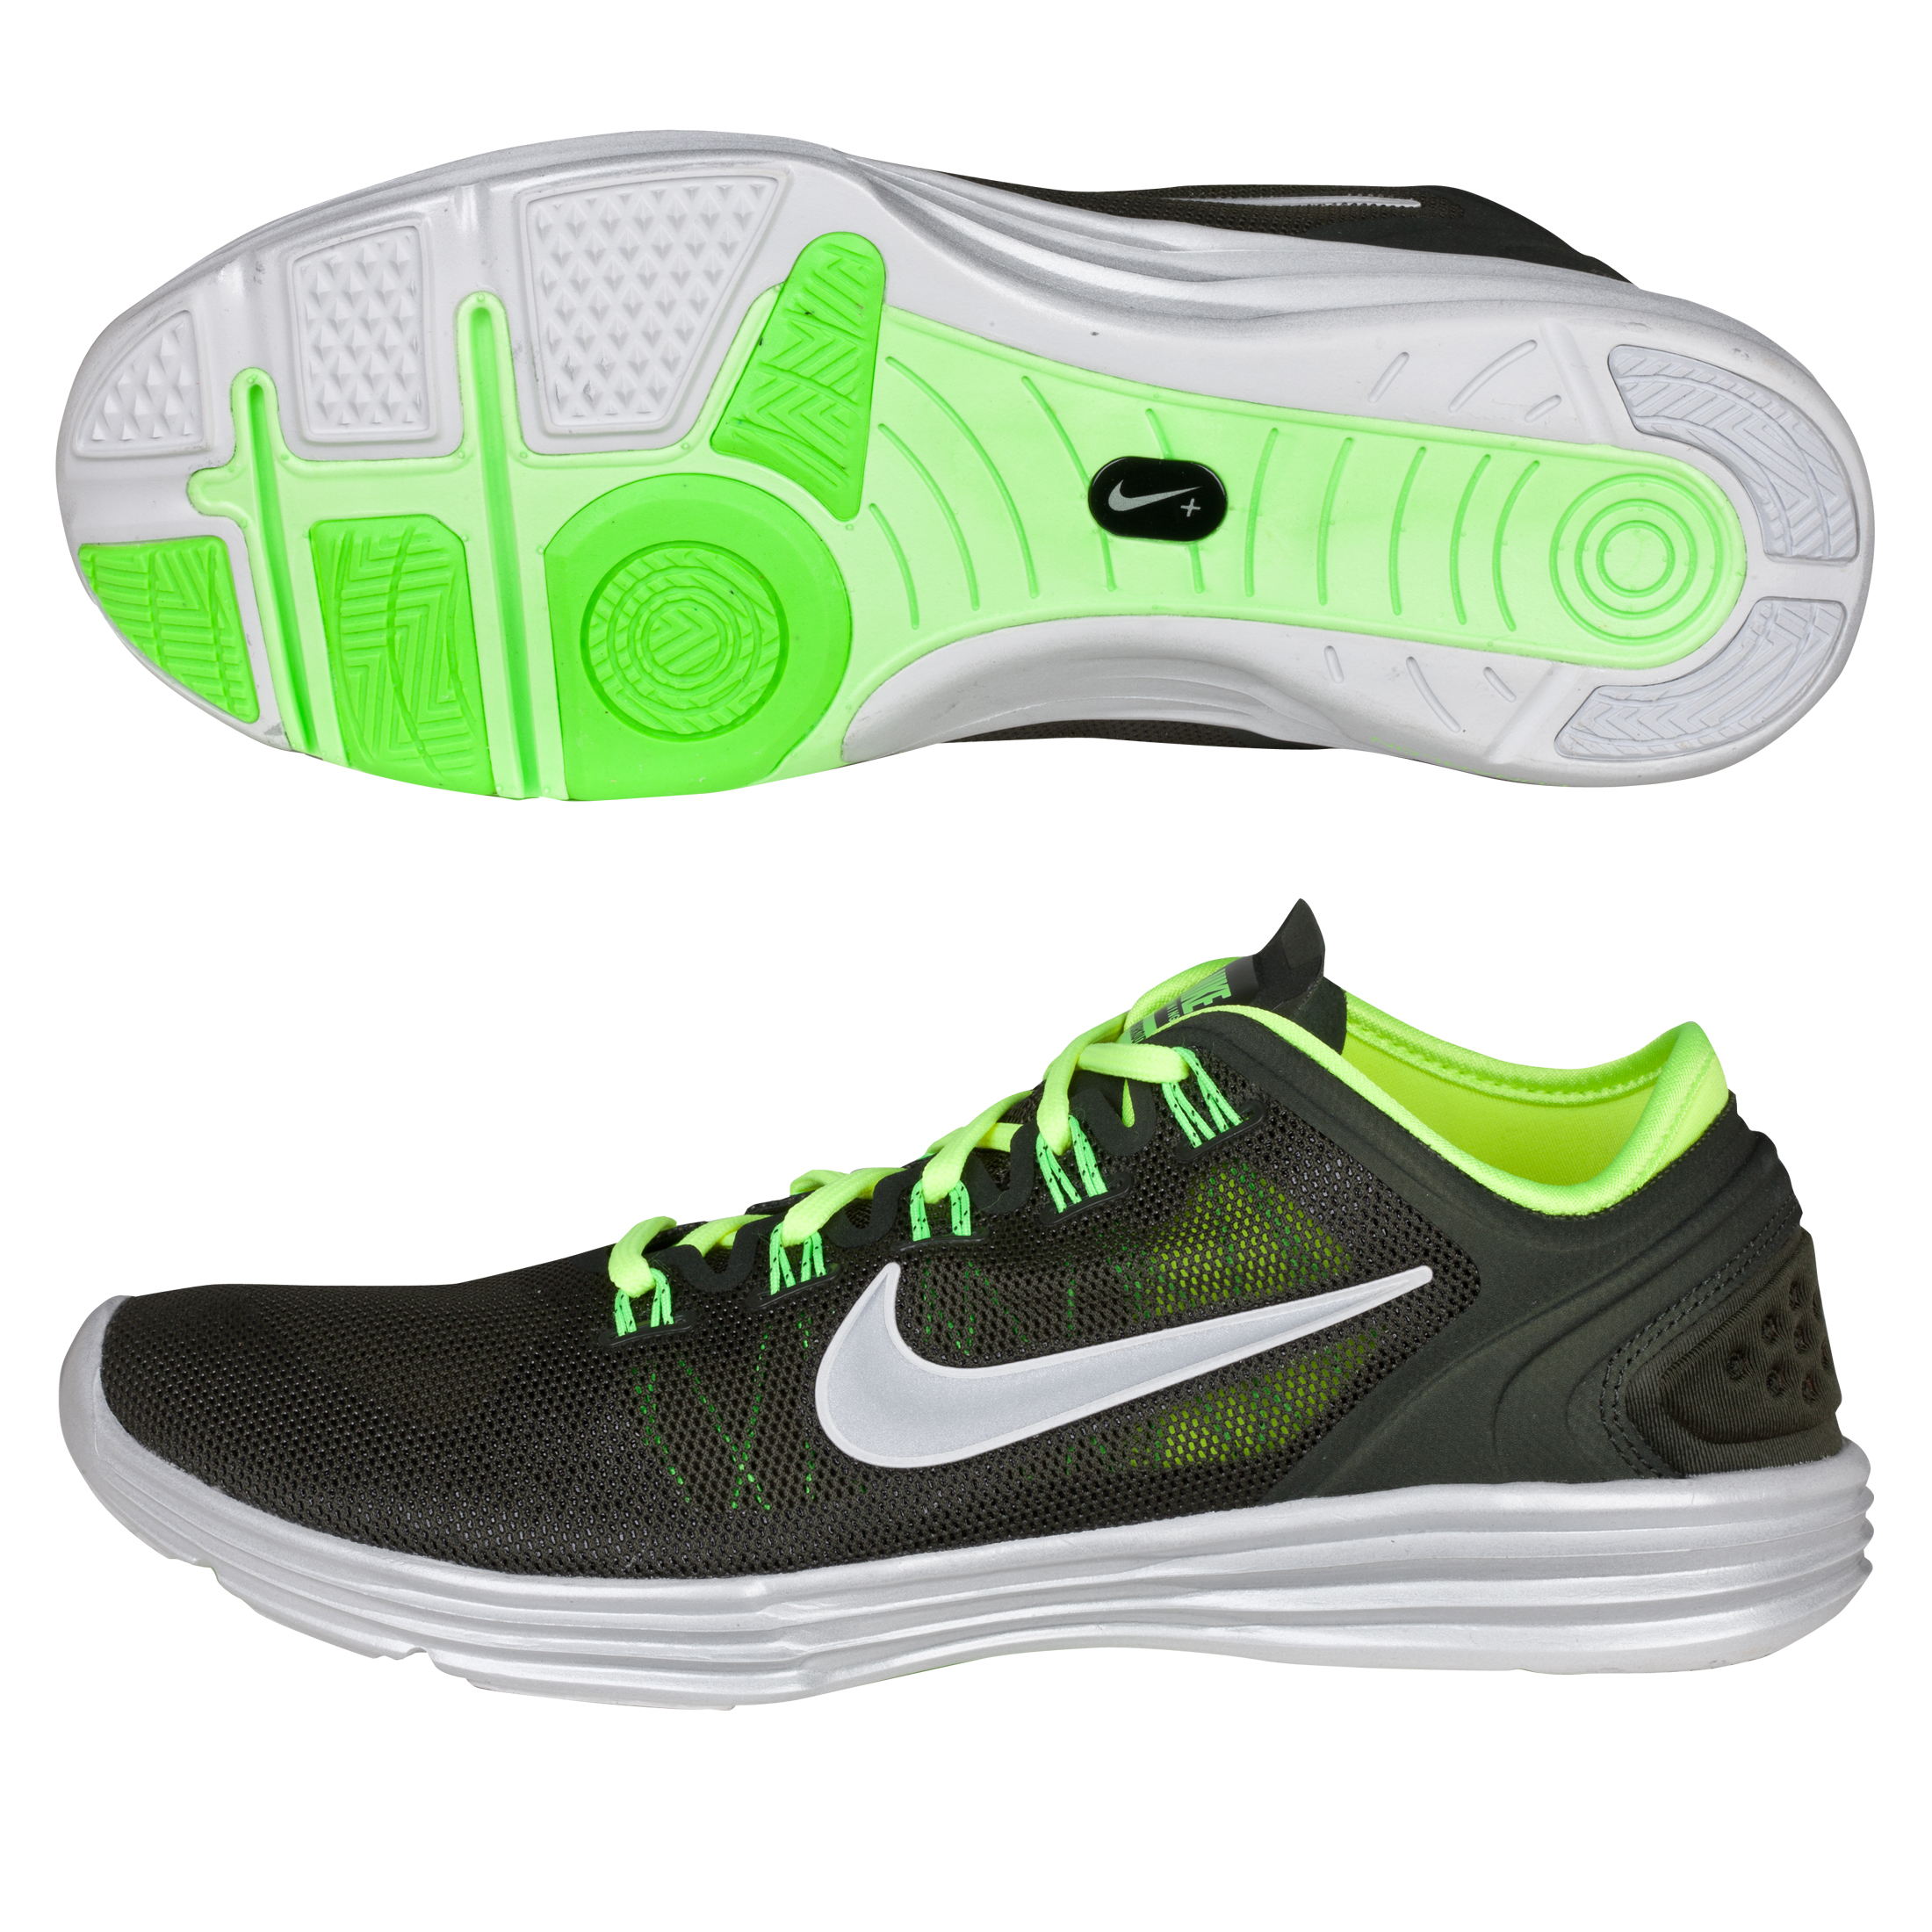 Nike Womens Lunar Hyperworkout Xt+ Trainer - Silver/Green - Womens